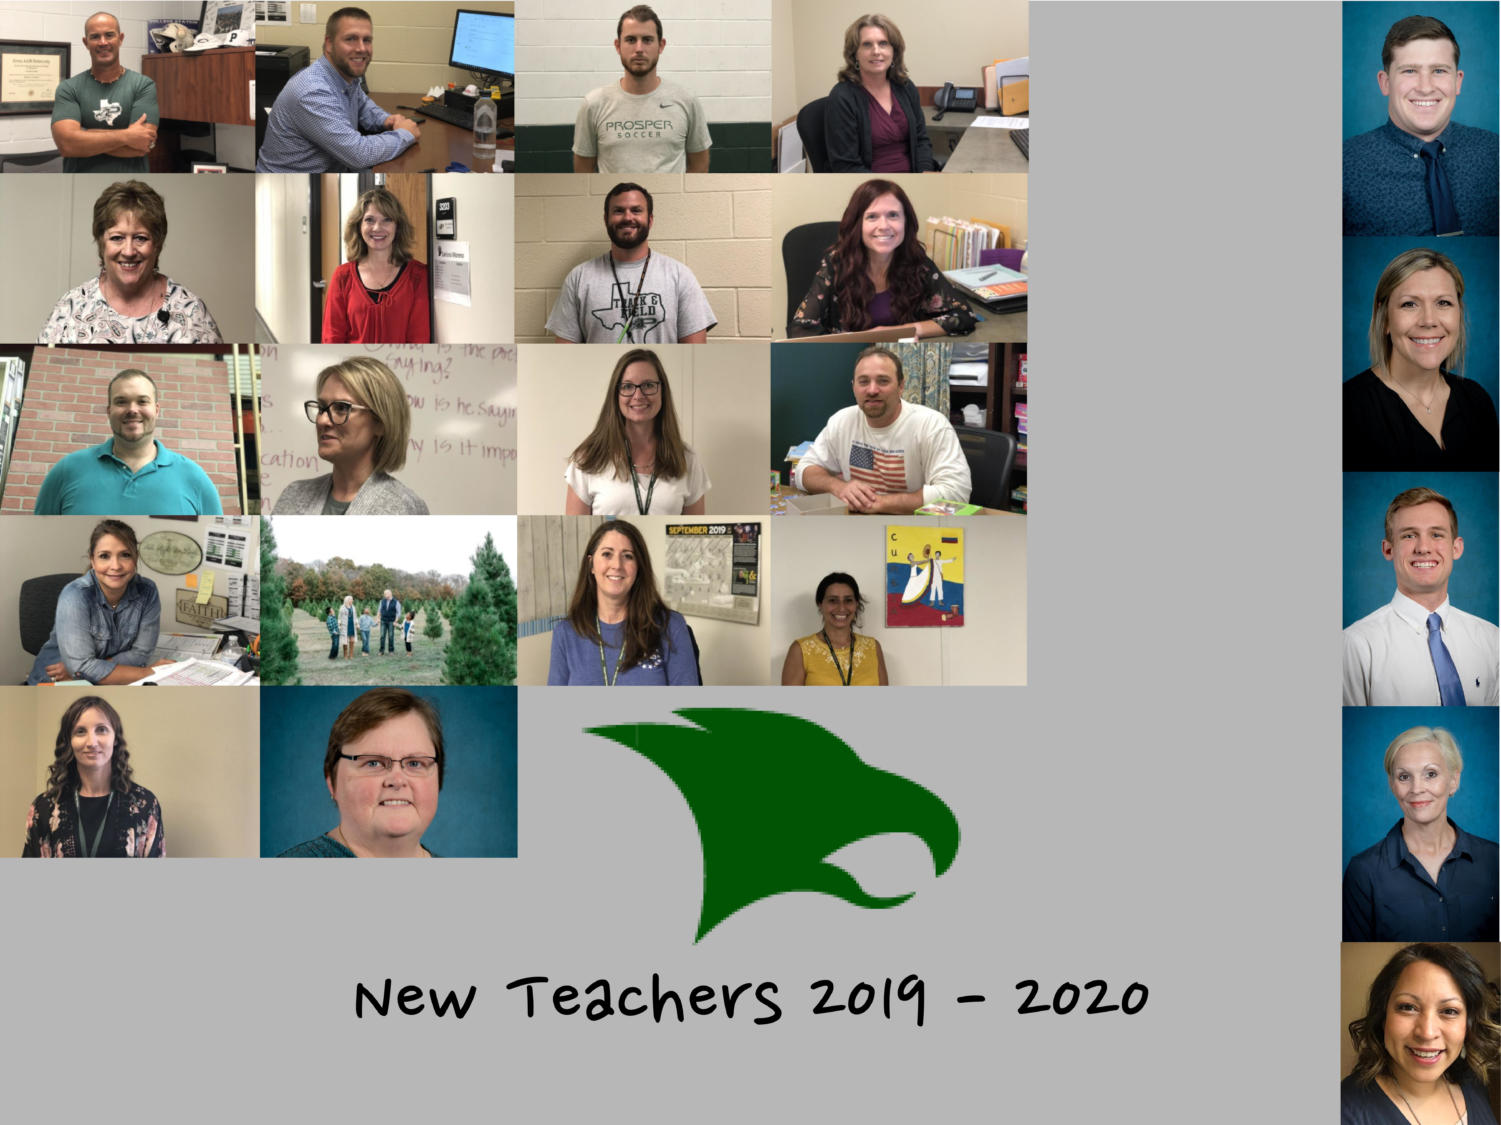 Prosper High School hired 46 new teachers this year. Eagle Nation Online will be covering as many as possible.